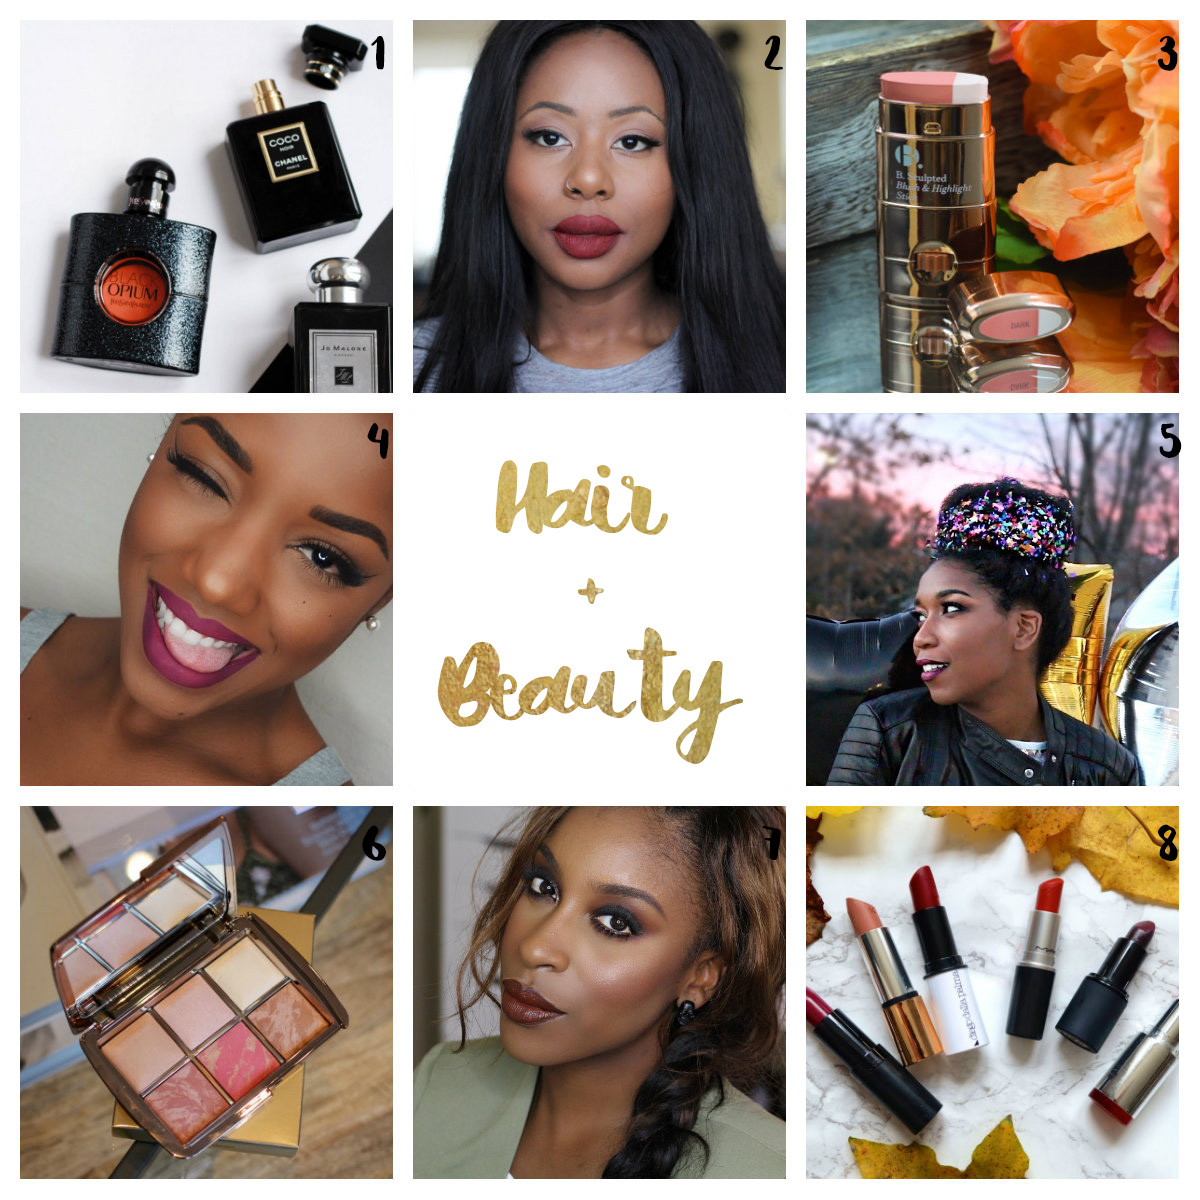 woc beauty blogs to follow